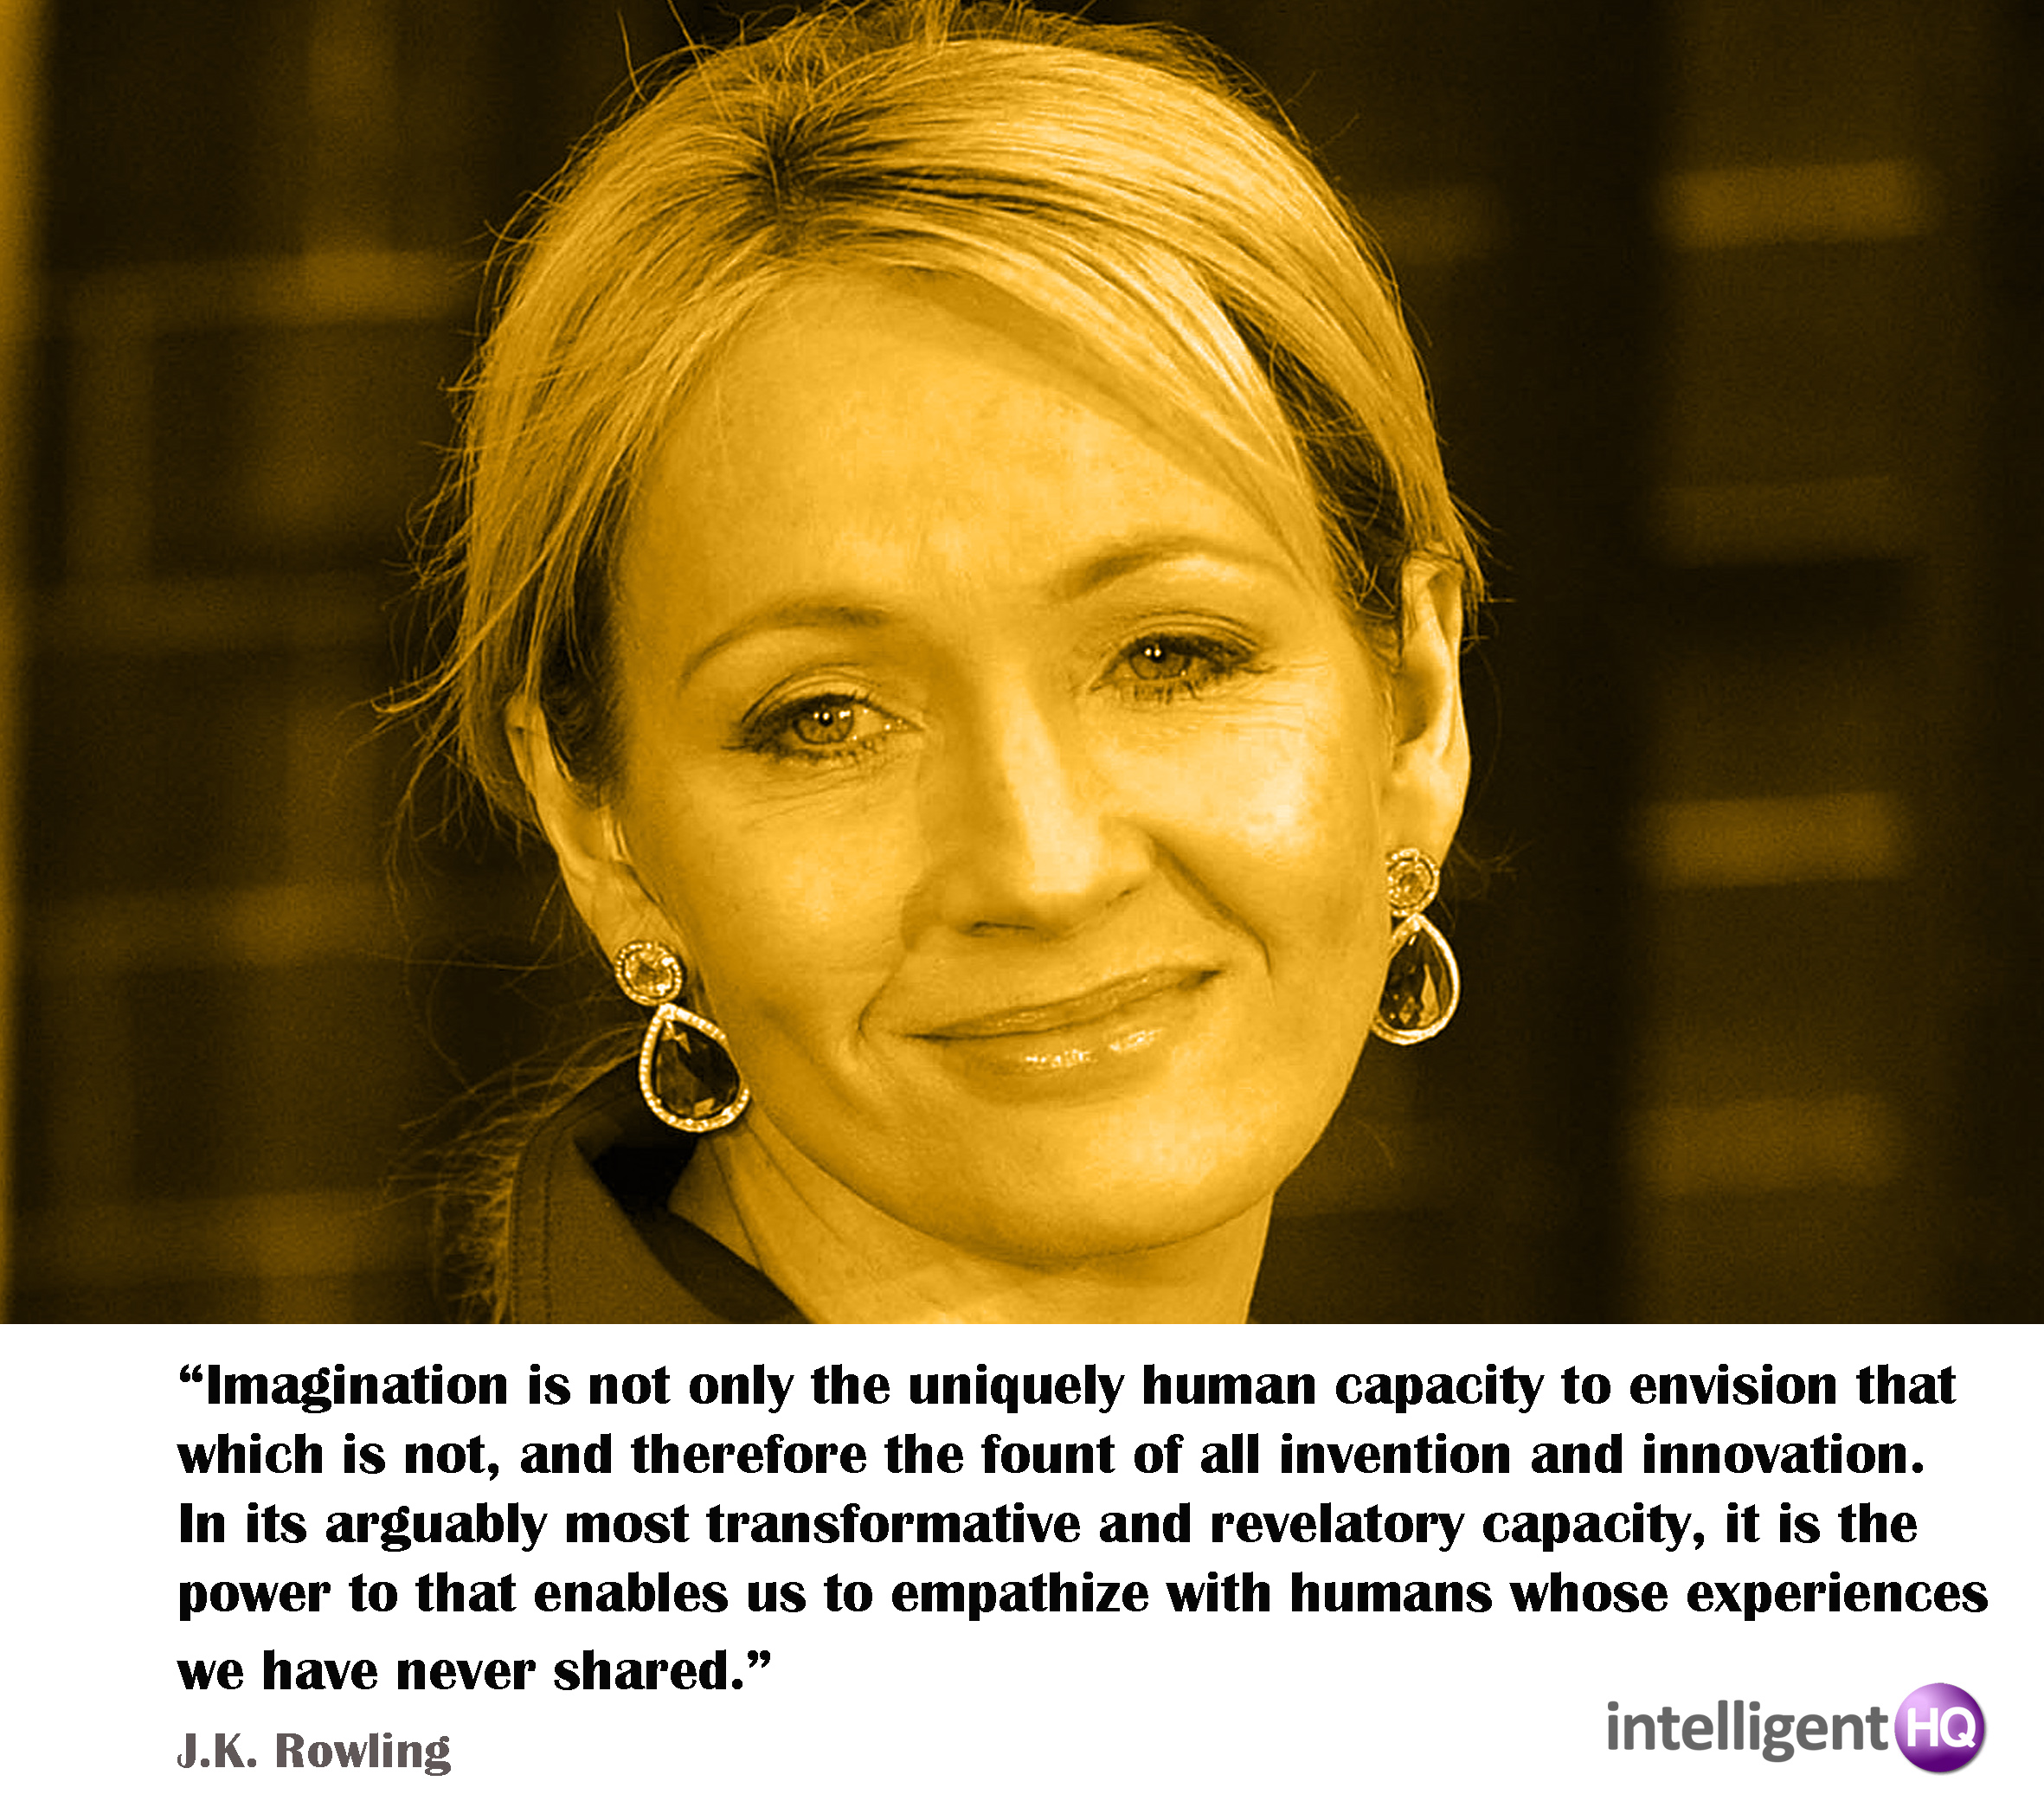 Quote by J.K. Rowling Intelligenthq